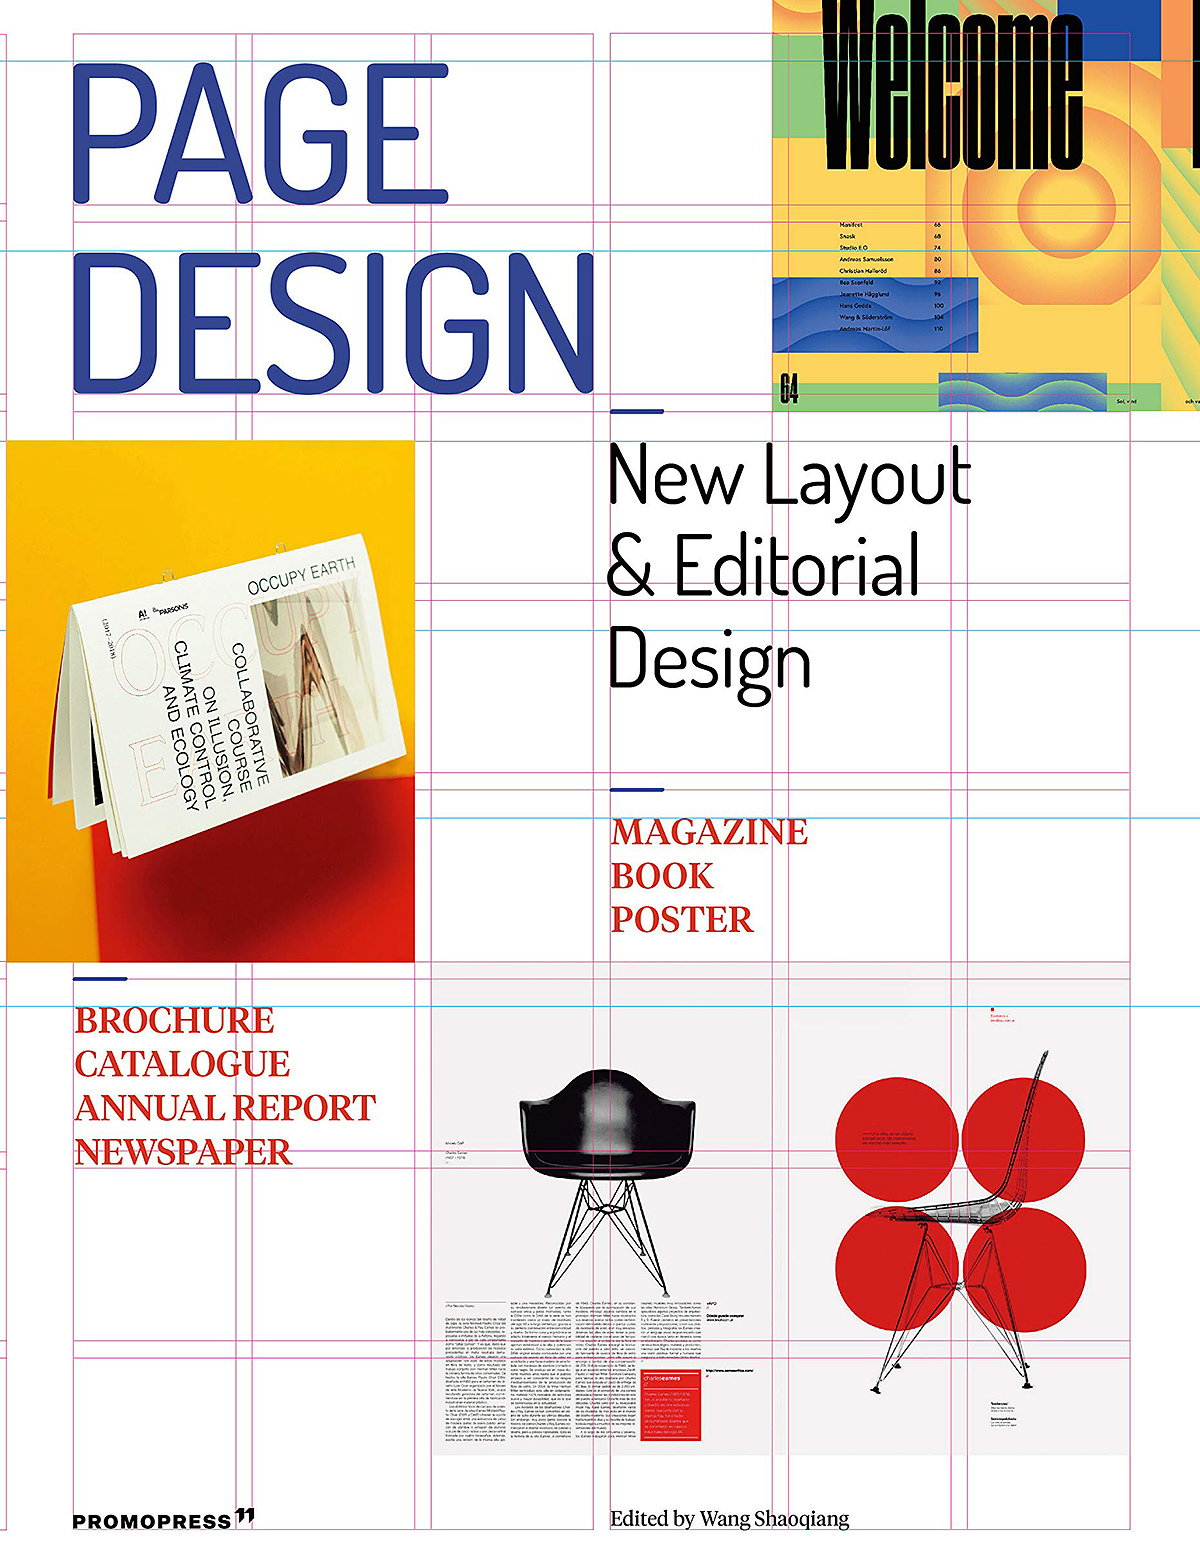 Page Design - Printed Matter and Editorial Design